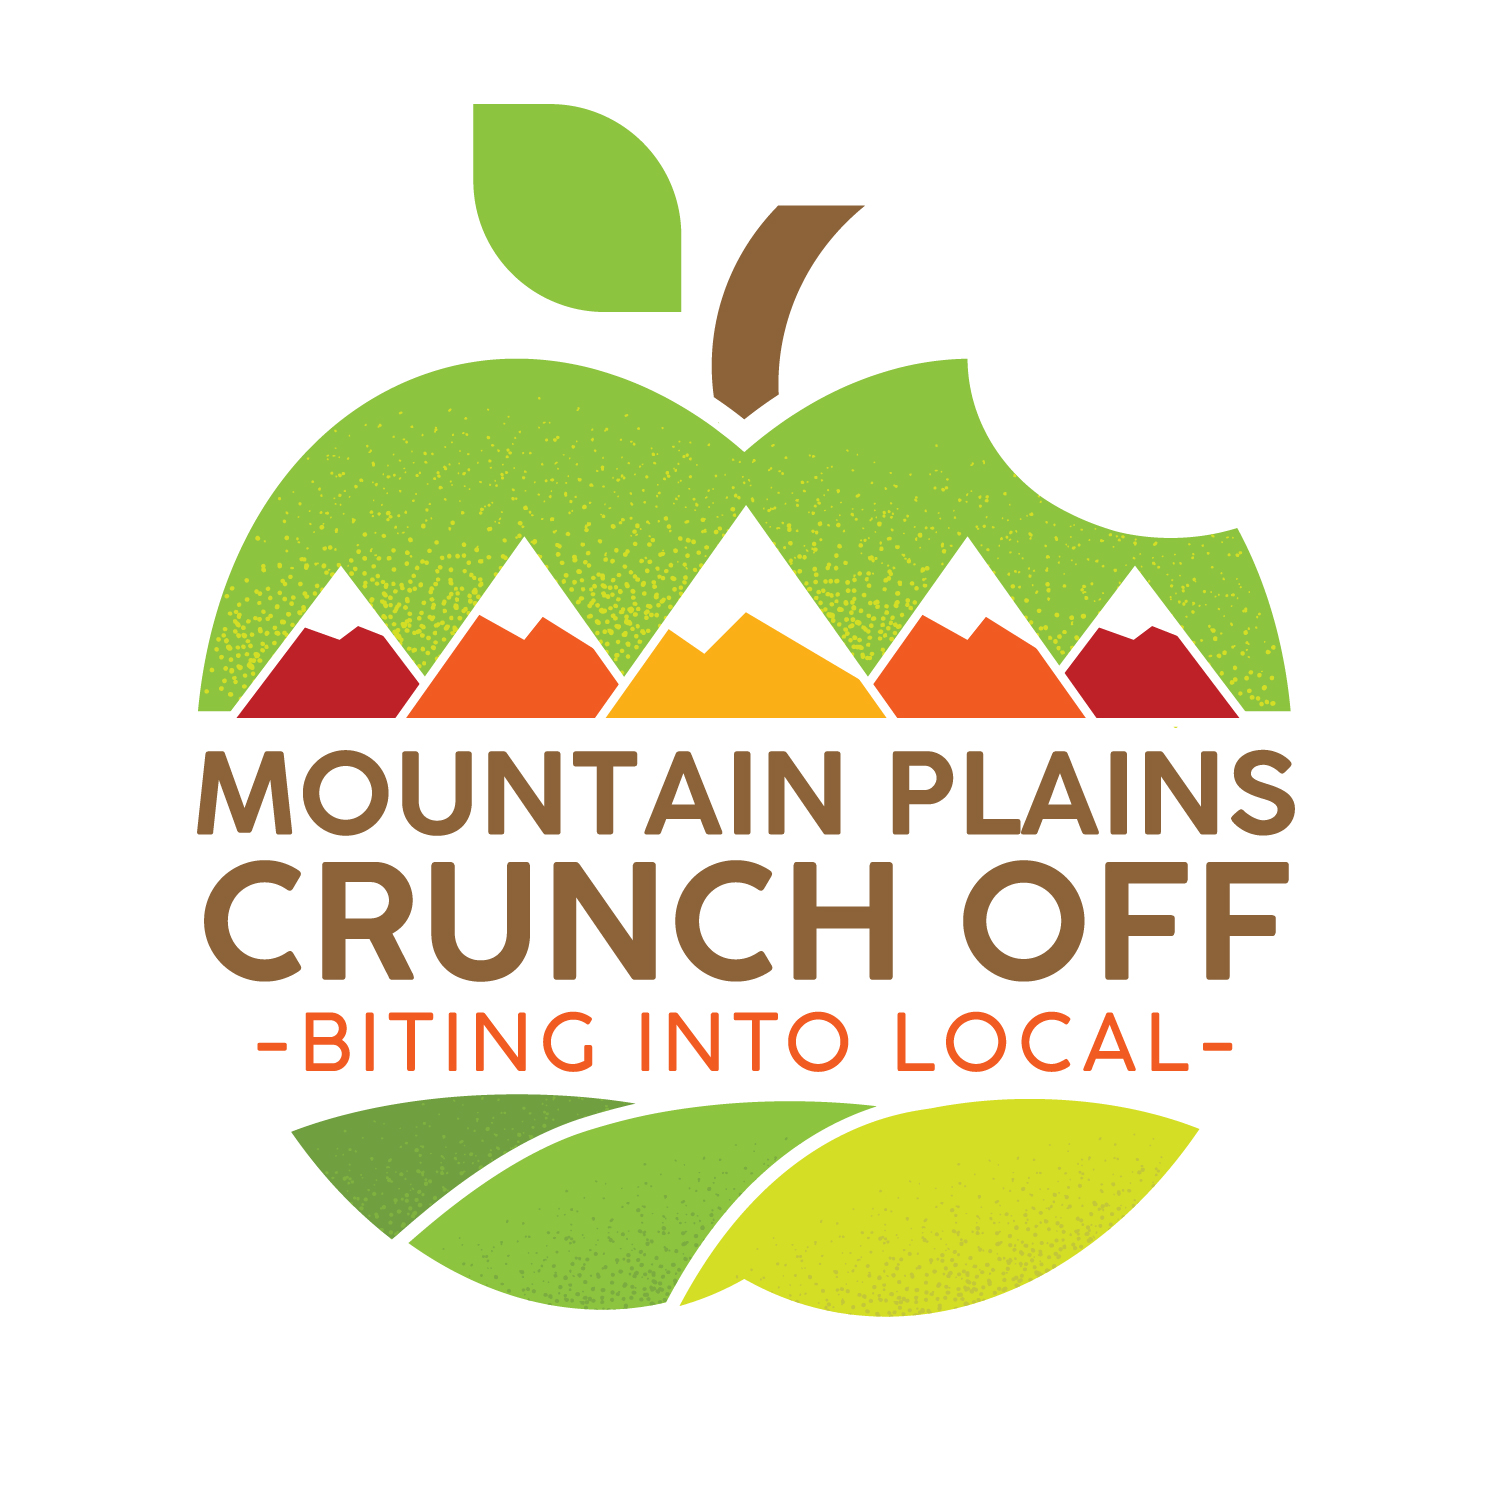 crunch off logo